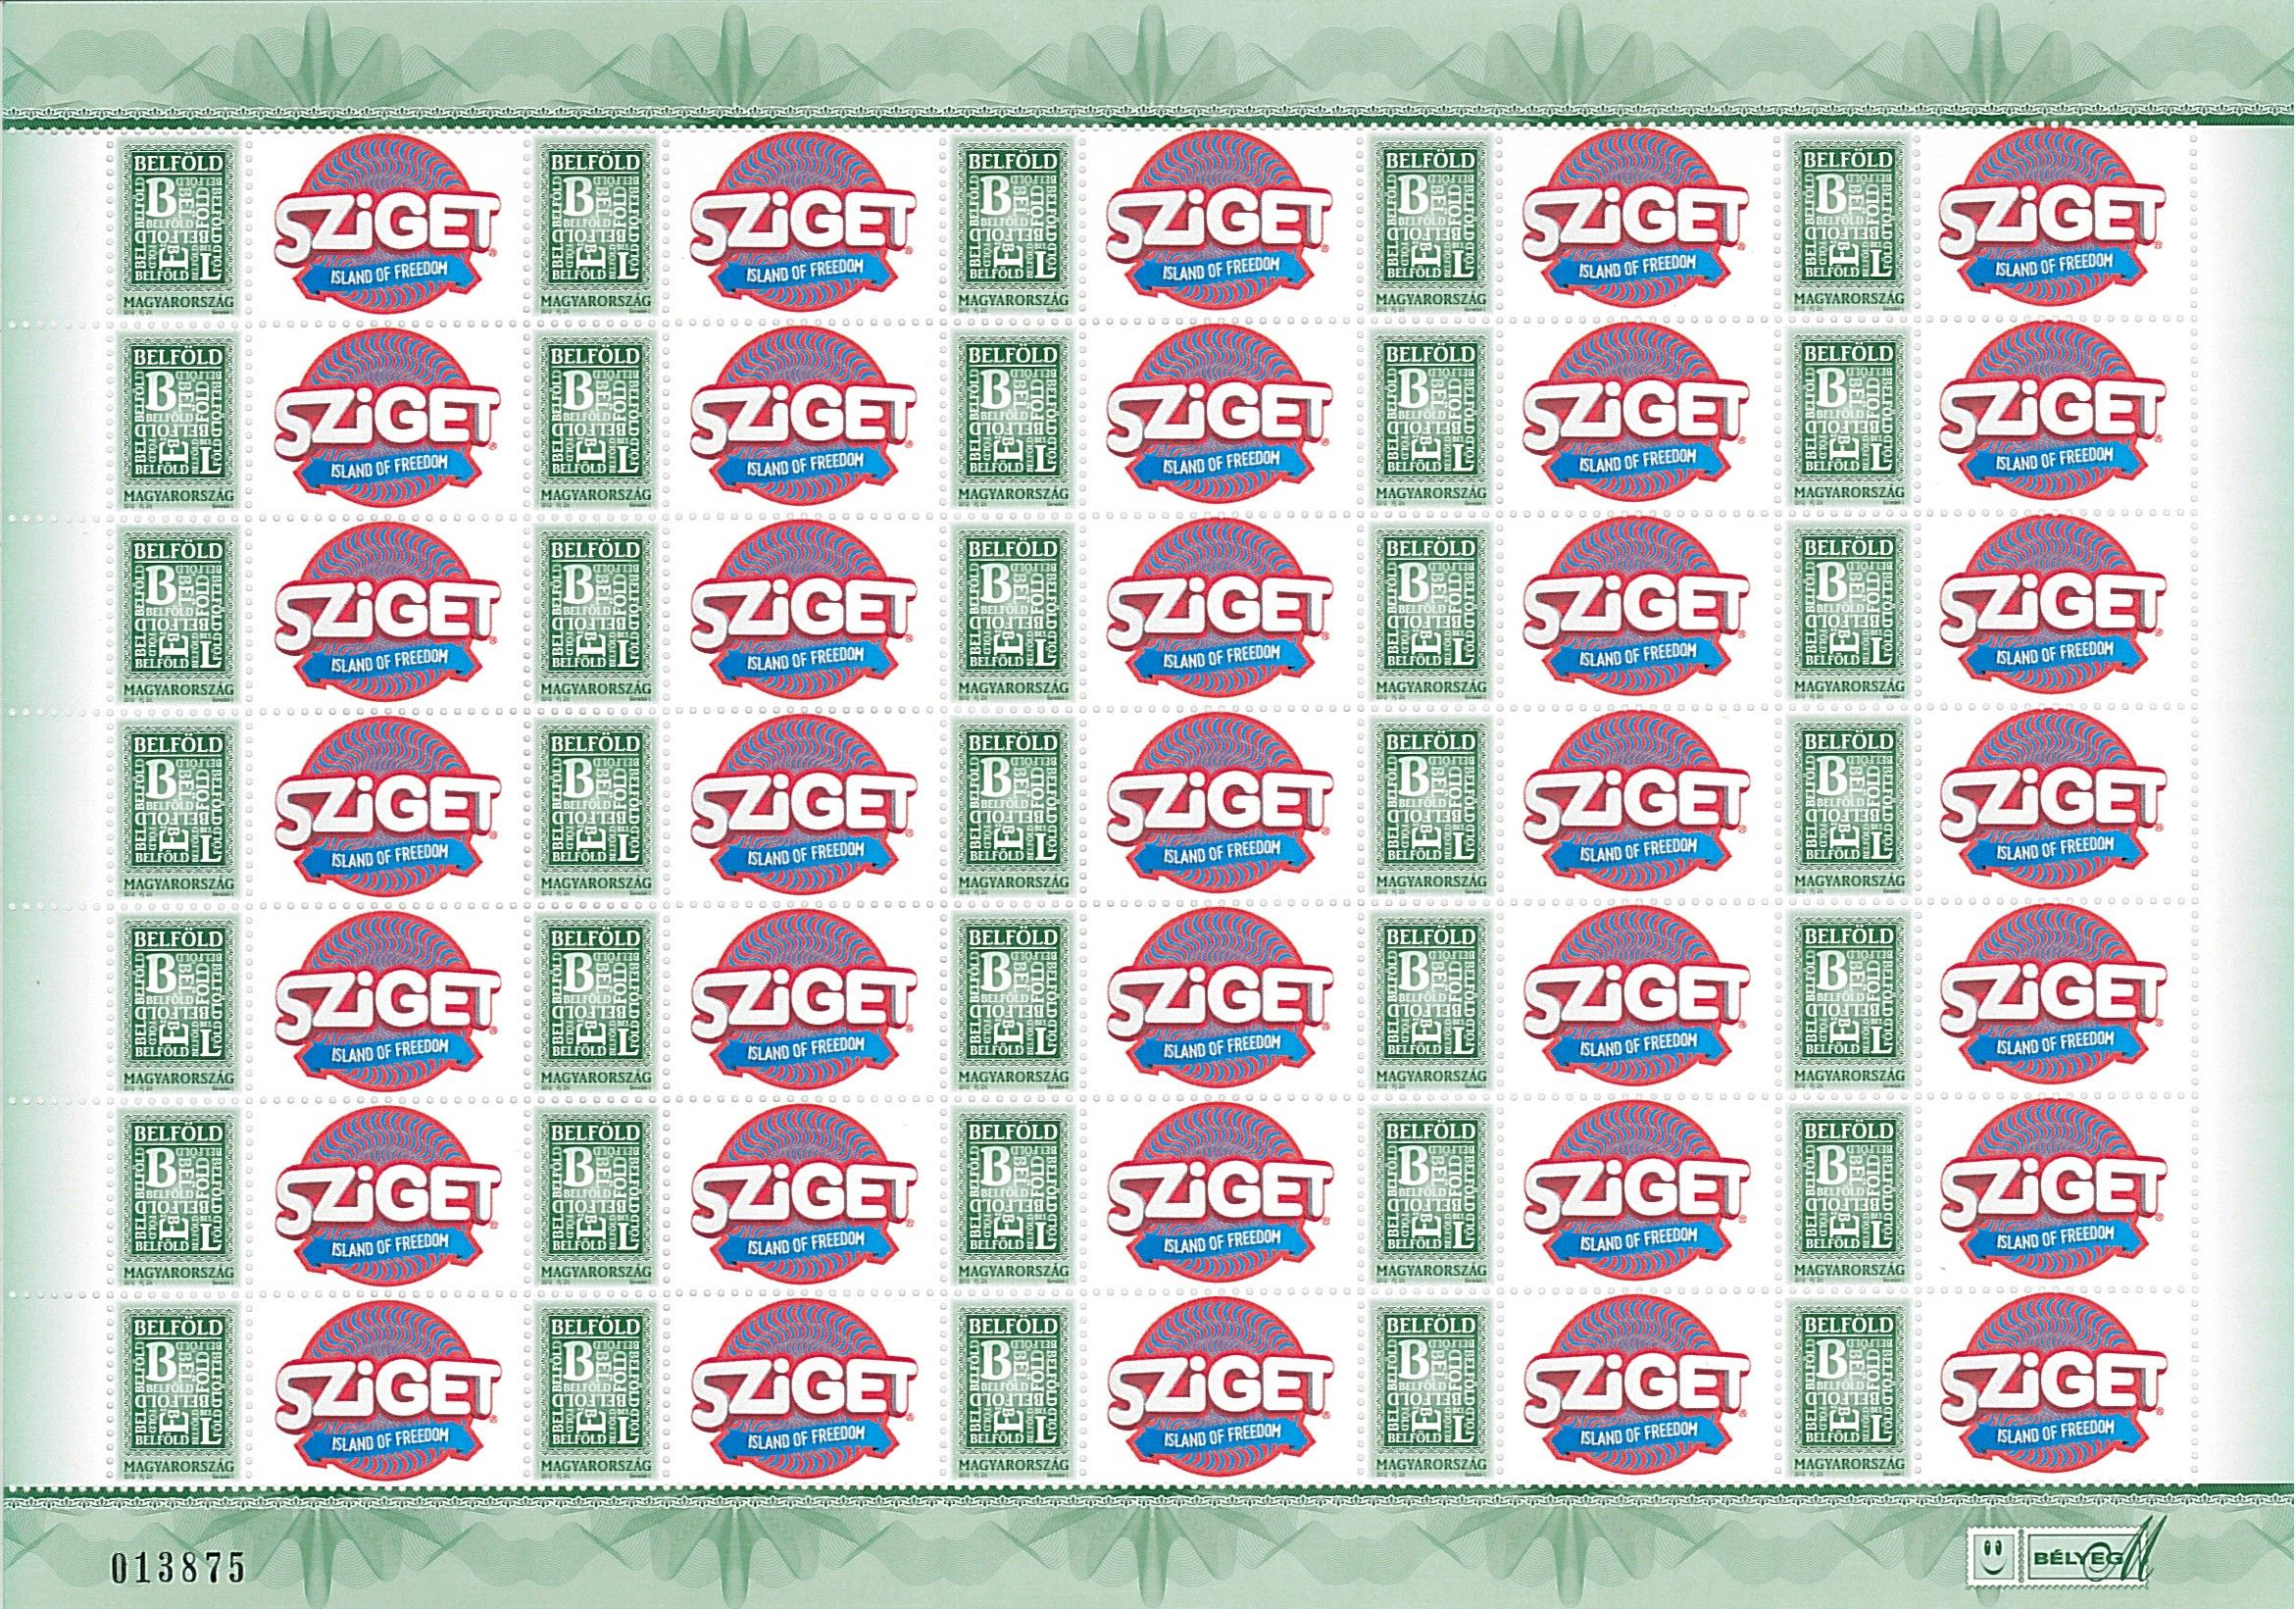 Your Own Message Stamp IV: Sziget 2015 sheet (35 stamps)